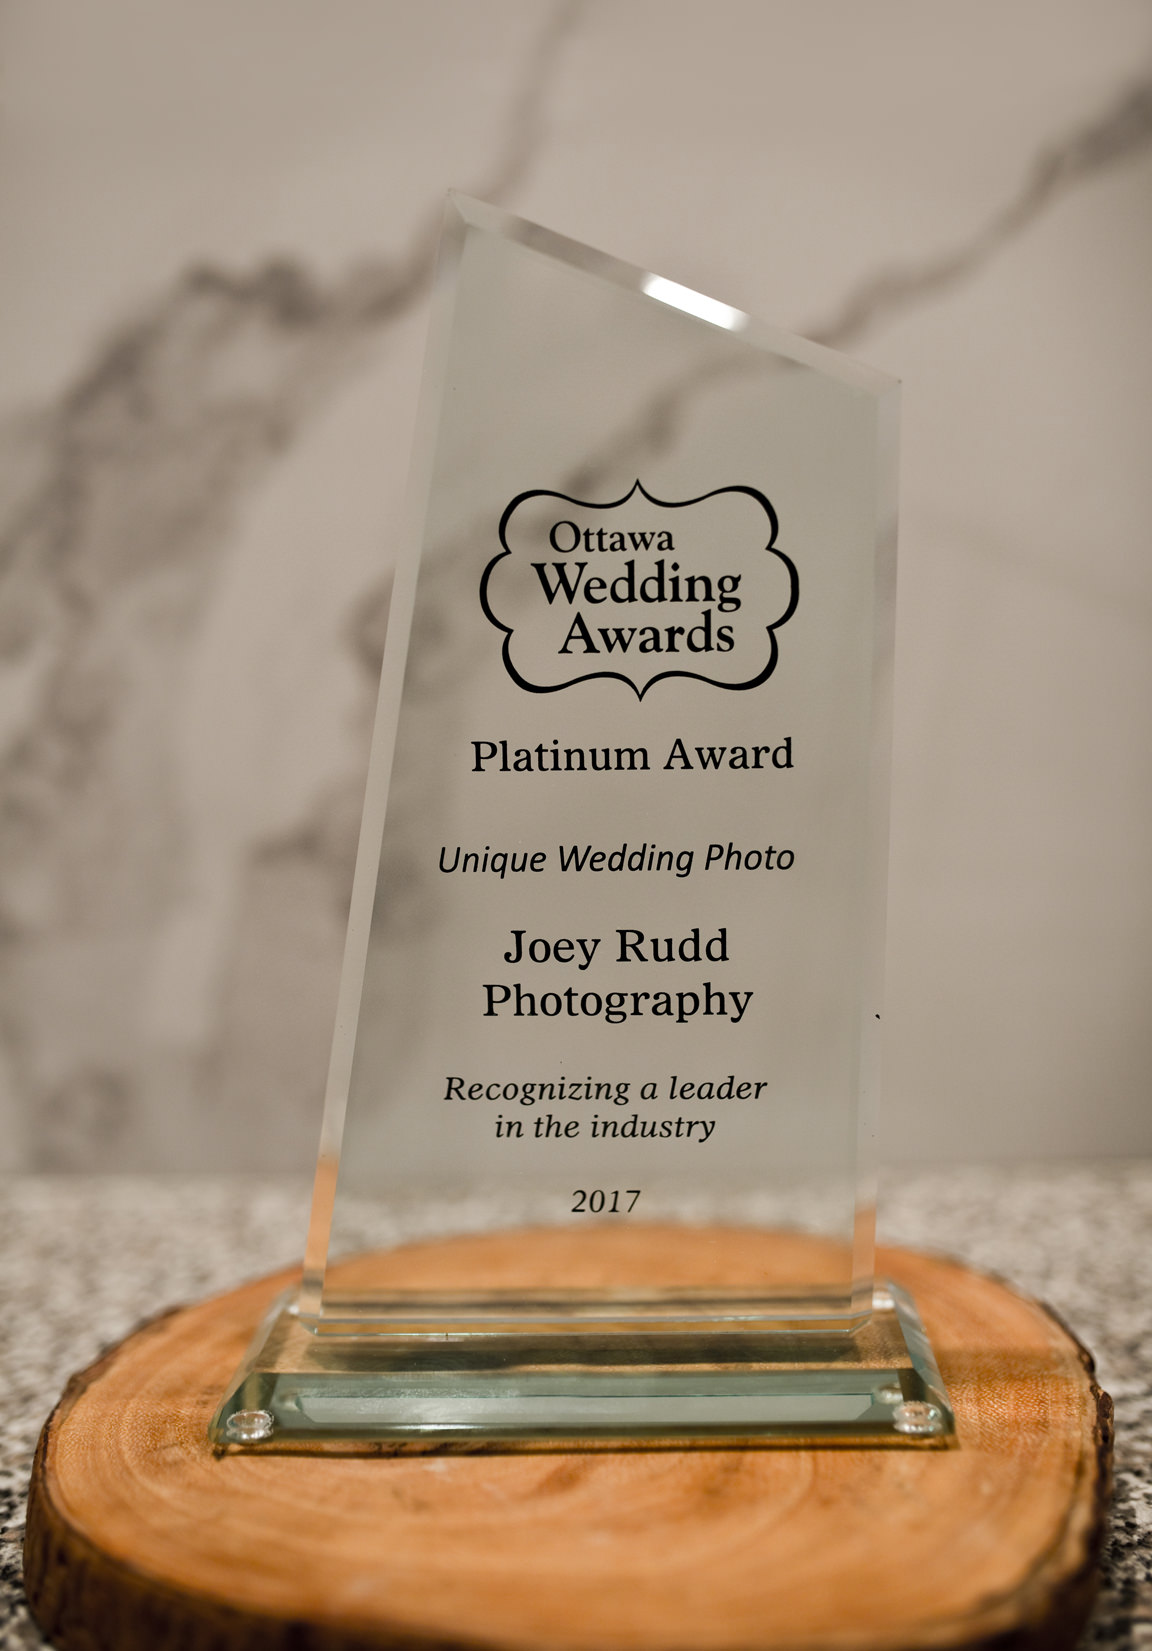 Ottawa Wedding Awards Platinum Award Ottawa Wedding Photographer Joey Rudd Photography Most Unique Photo